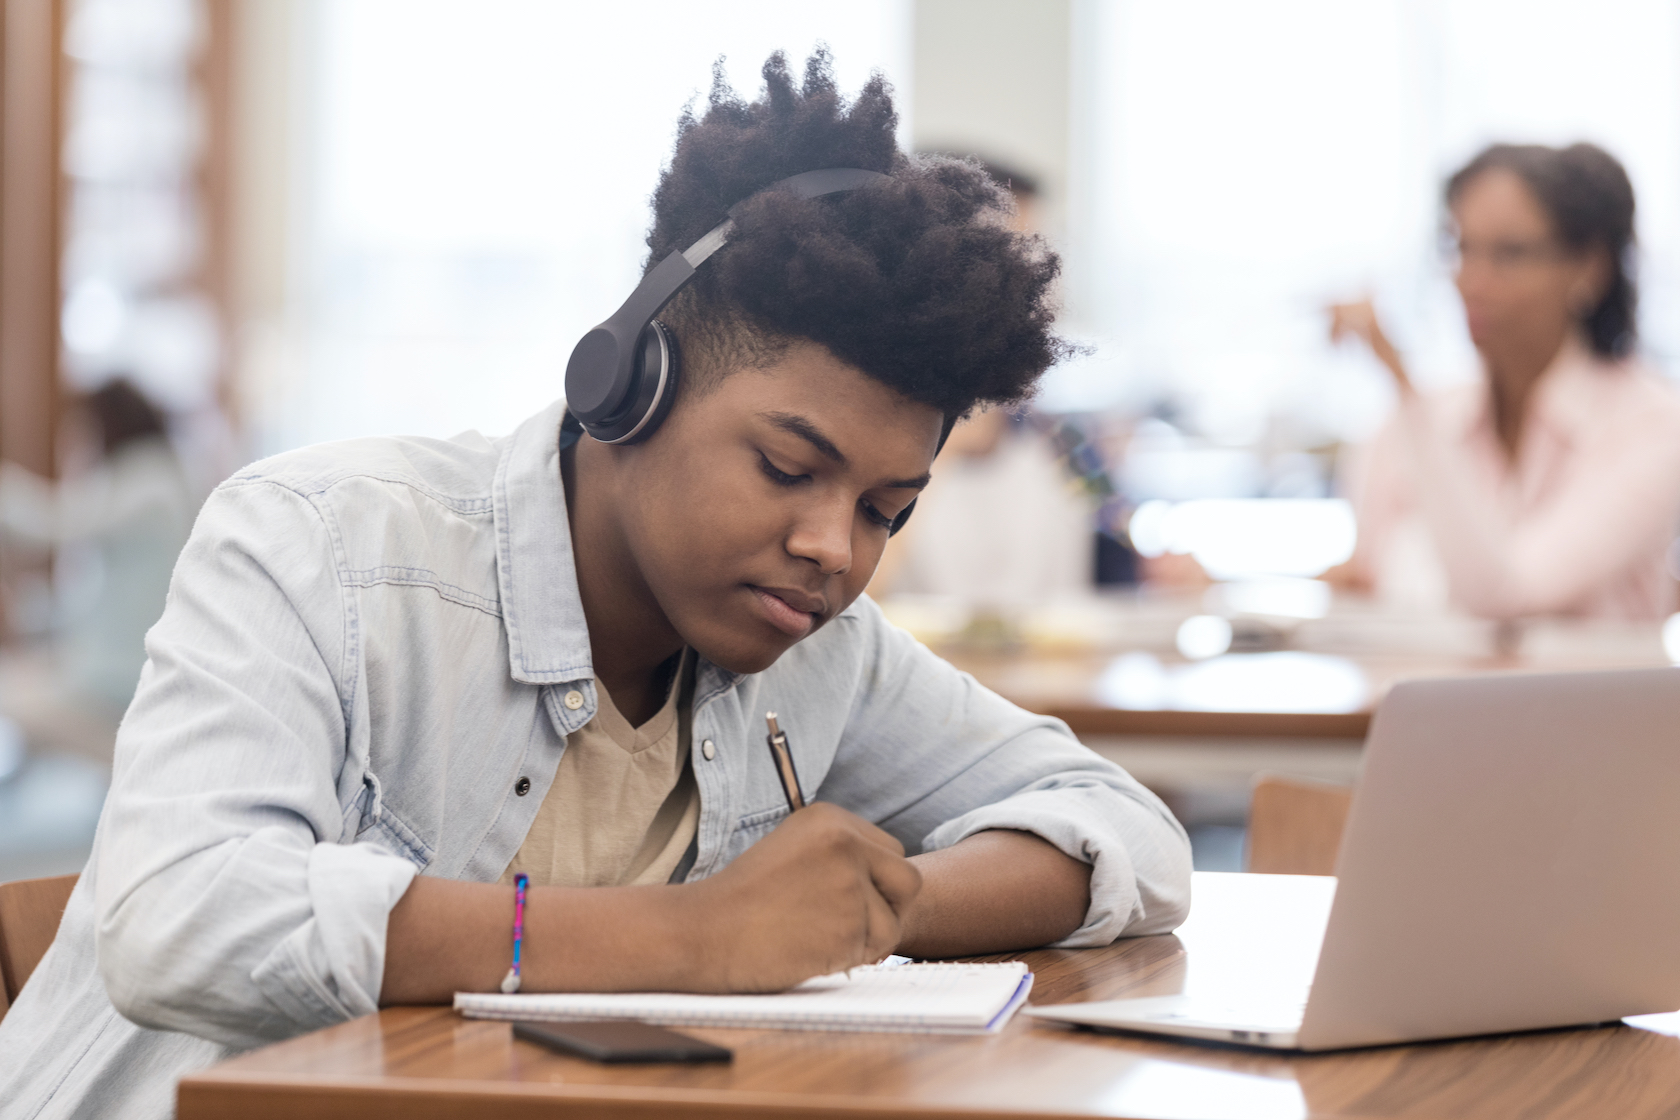 Boy working at laptop with headphones on